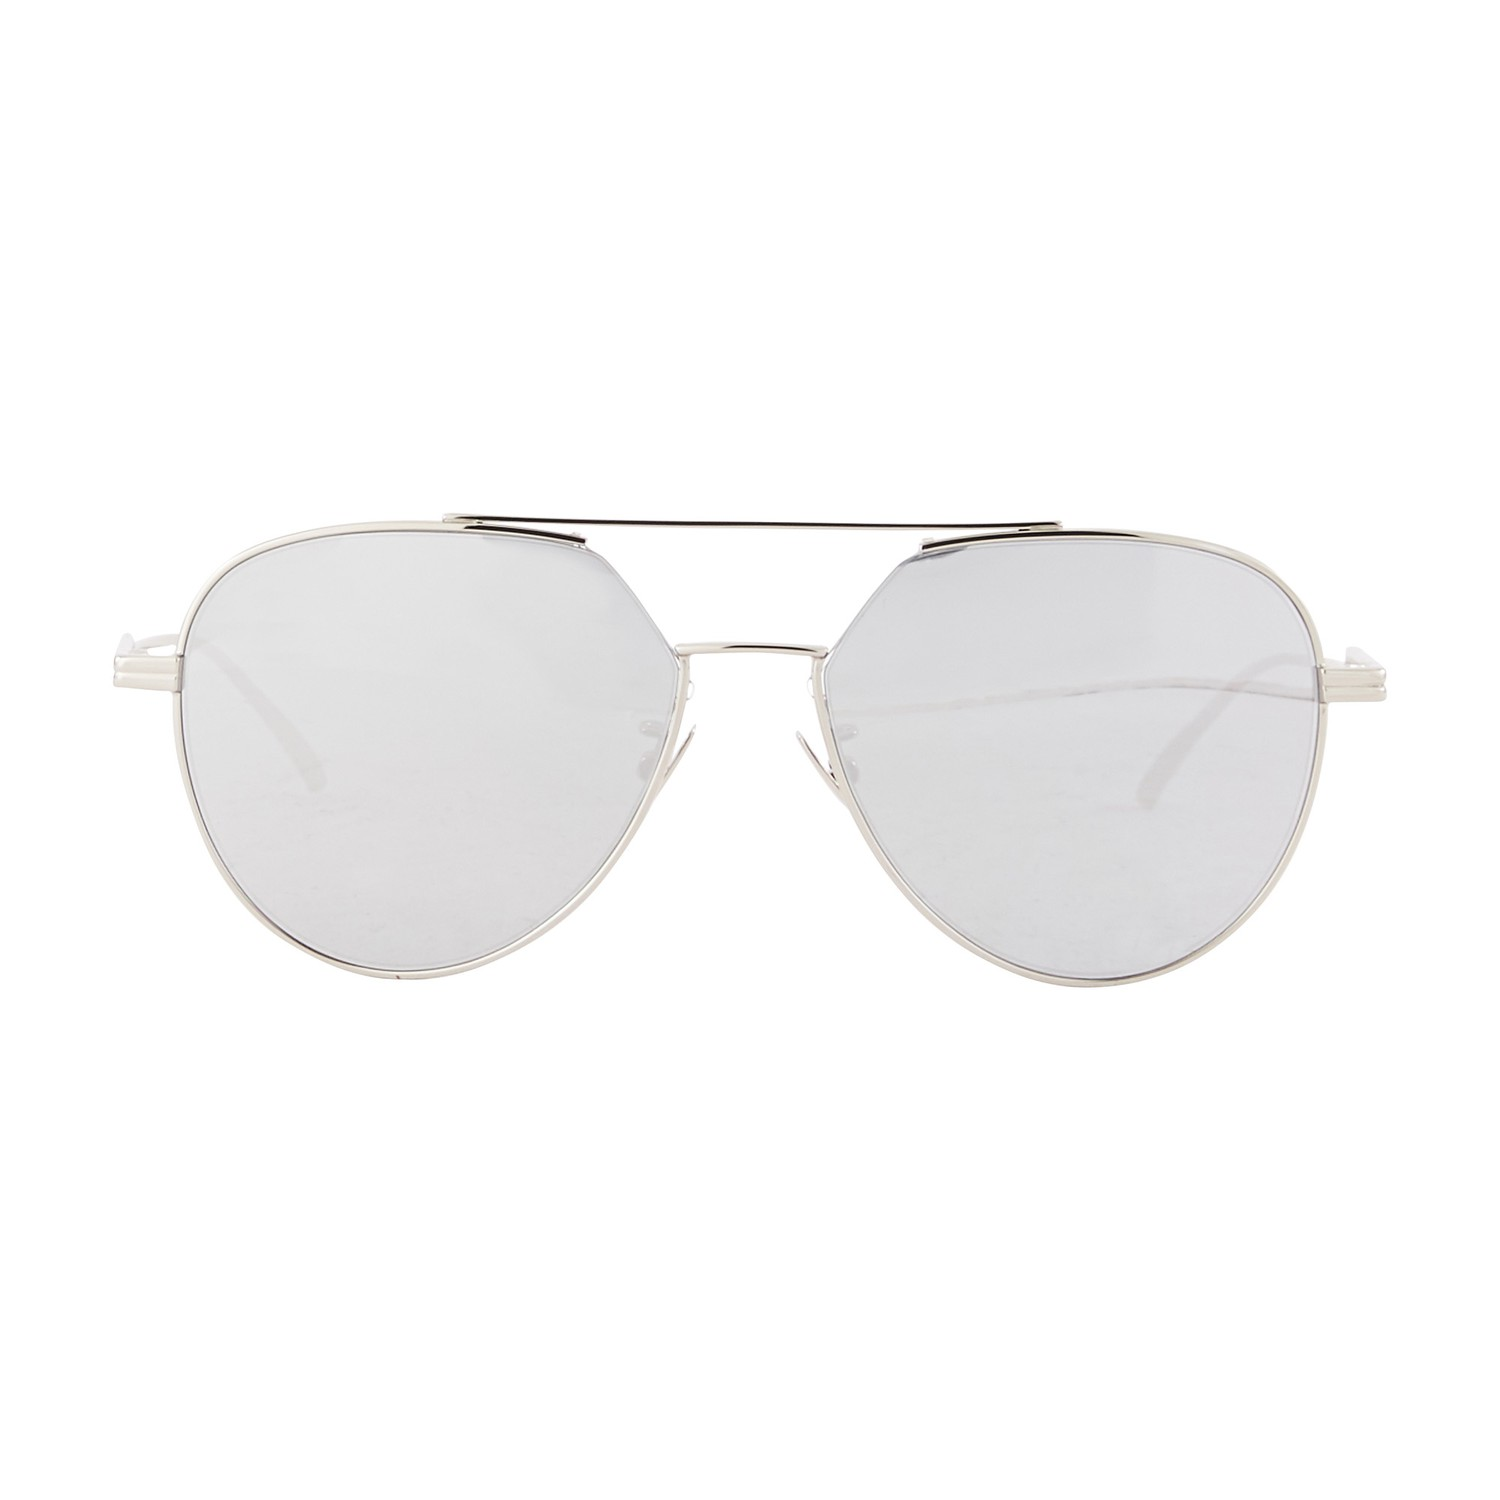 Bottega Veneta Sunglasses SUNGLASSES